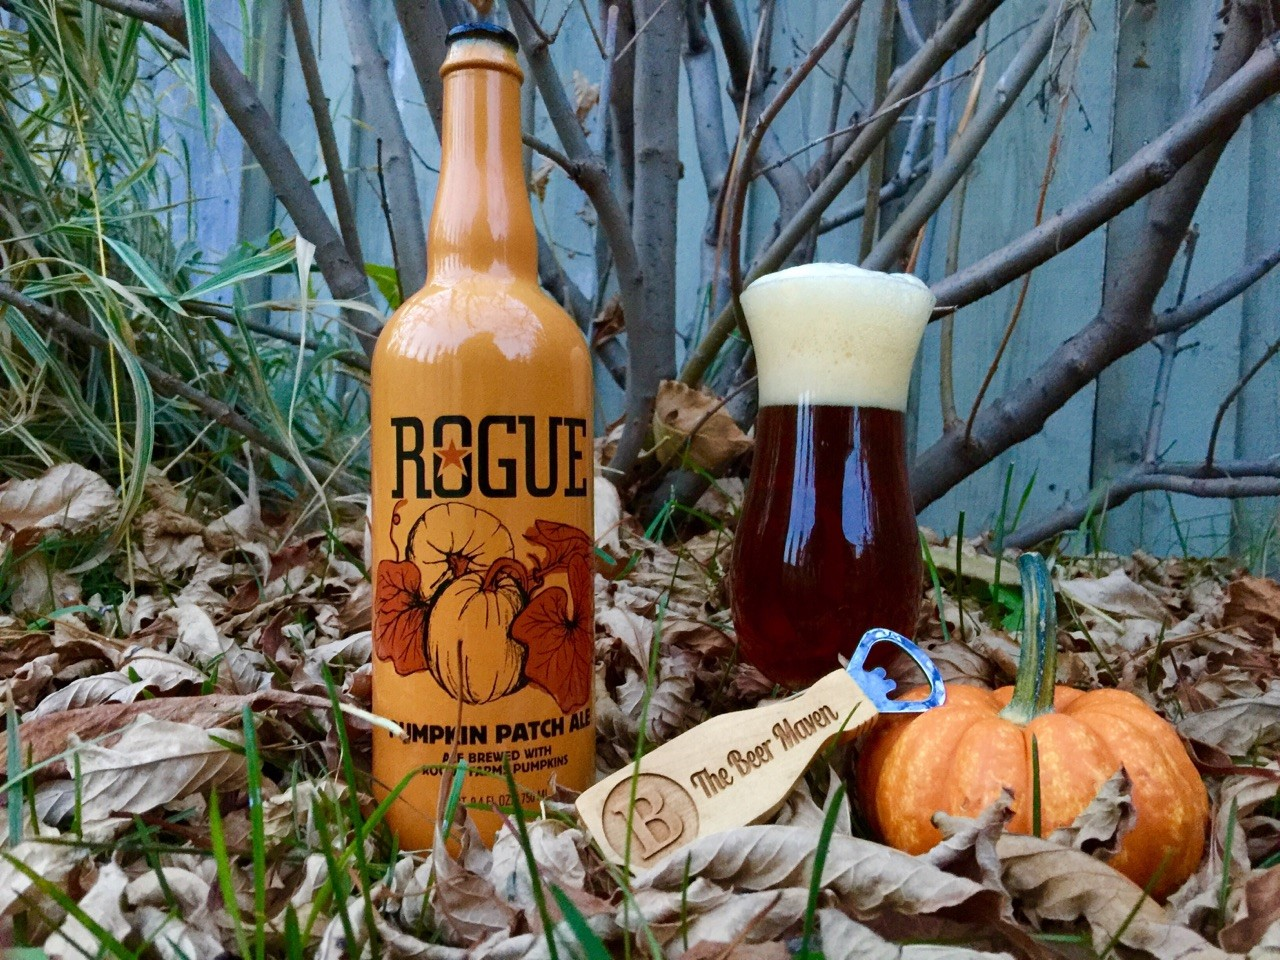 rogue-pumpkin-patch-ale